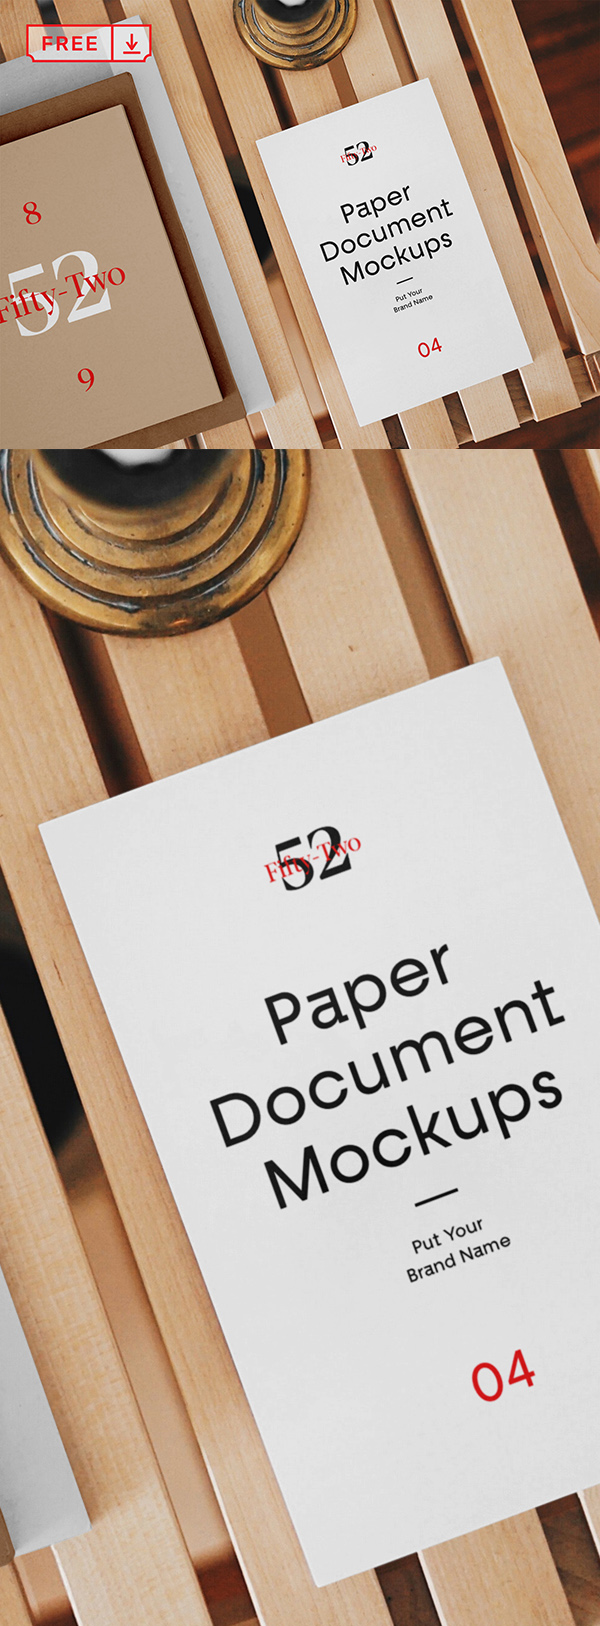 Free Paper Document Mockups